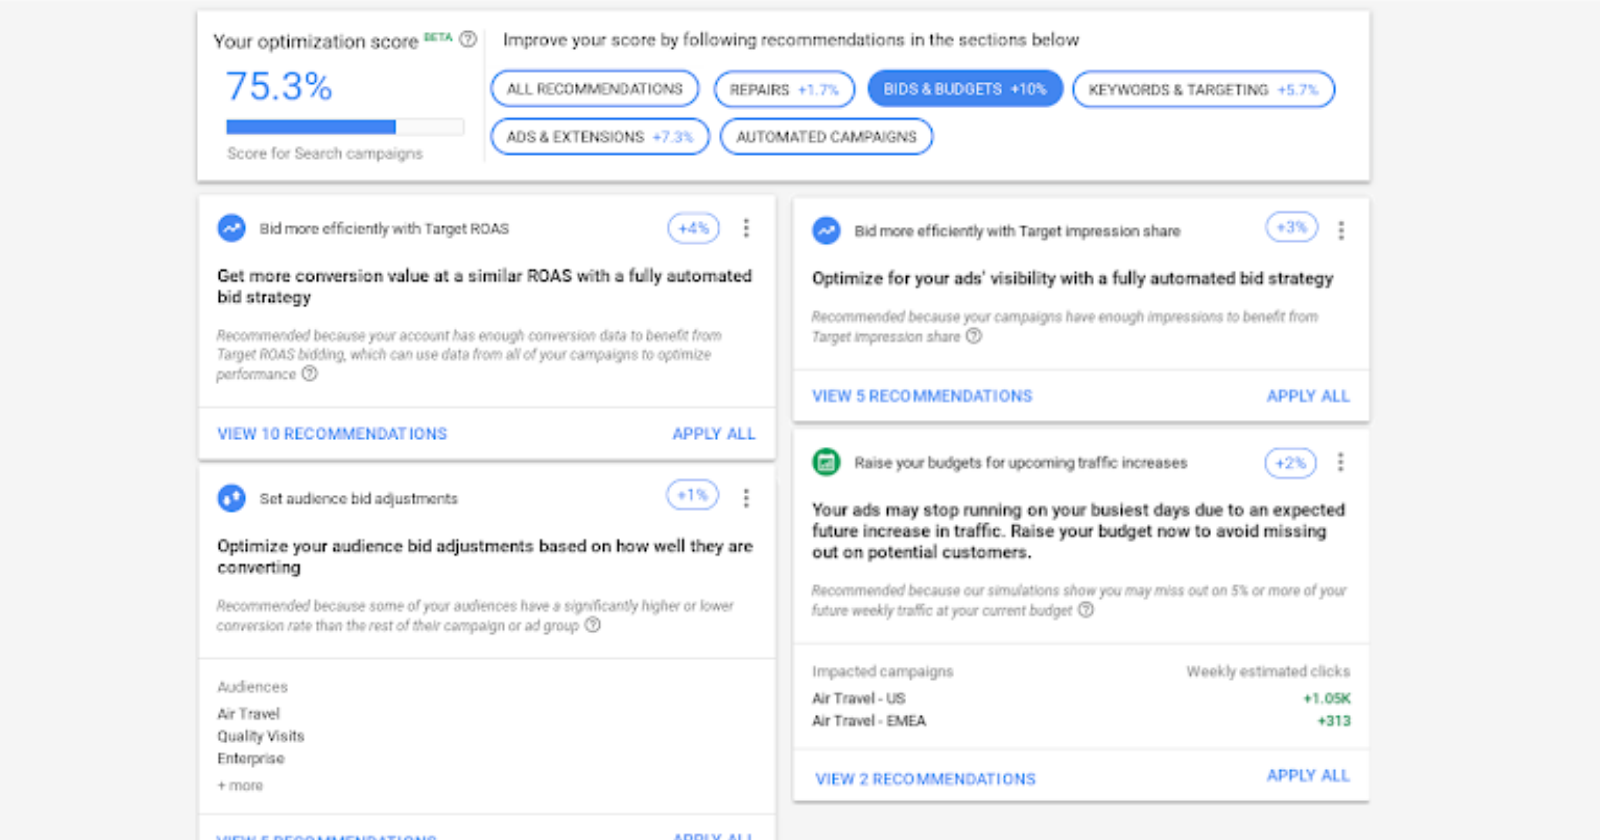 Google Ads Offers New Recommendations to Improve Optimization Score - Search Engine Journal